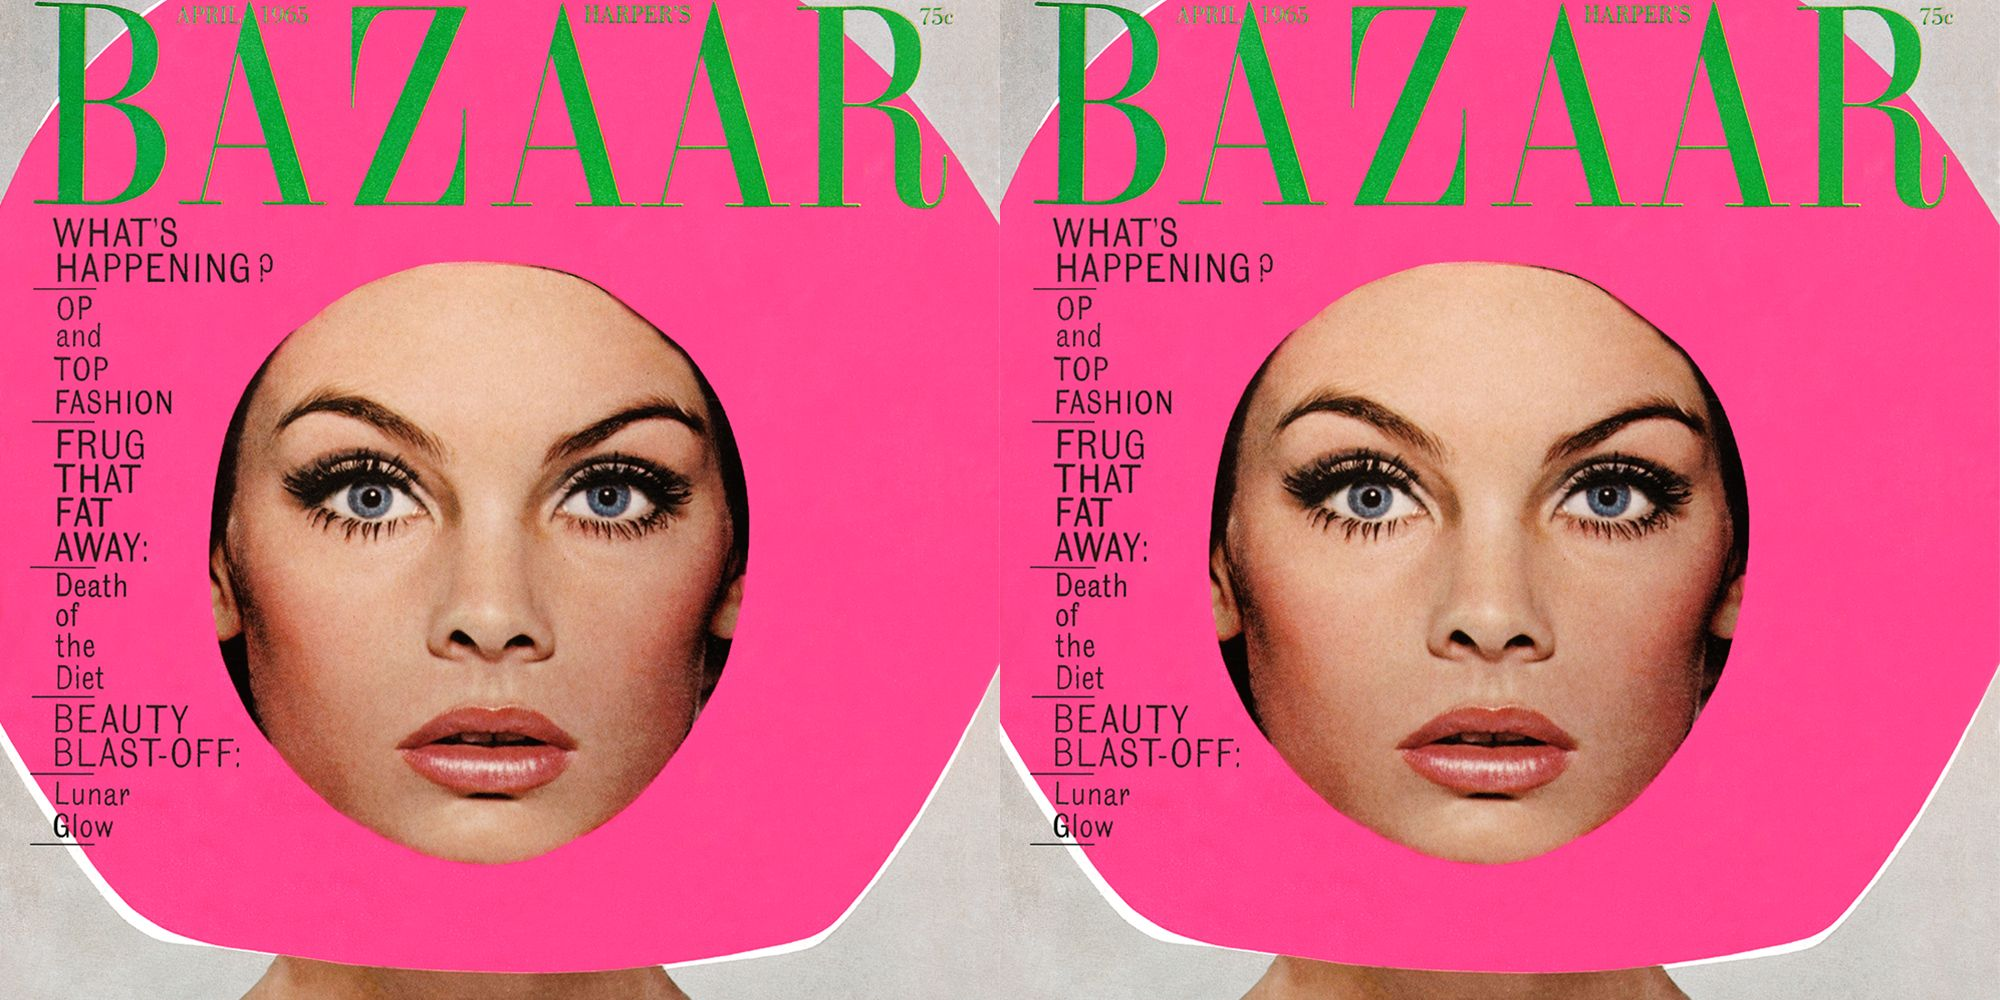 Pop Goes Bazaar: A Look Back at the Magazine in the 1960s